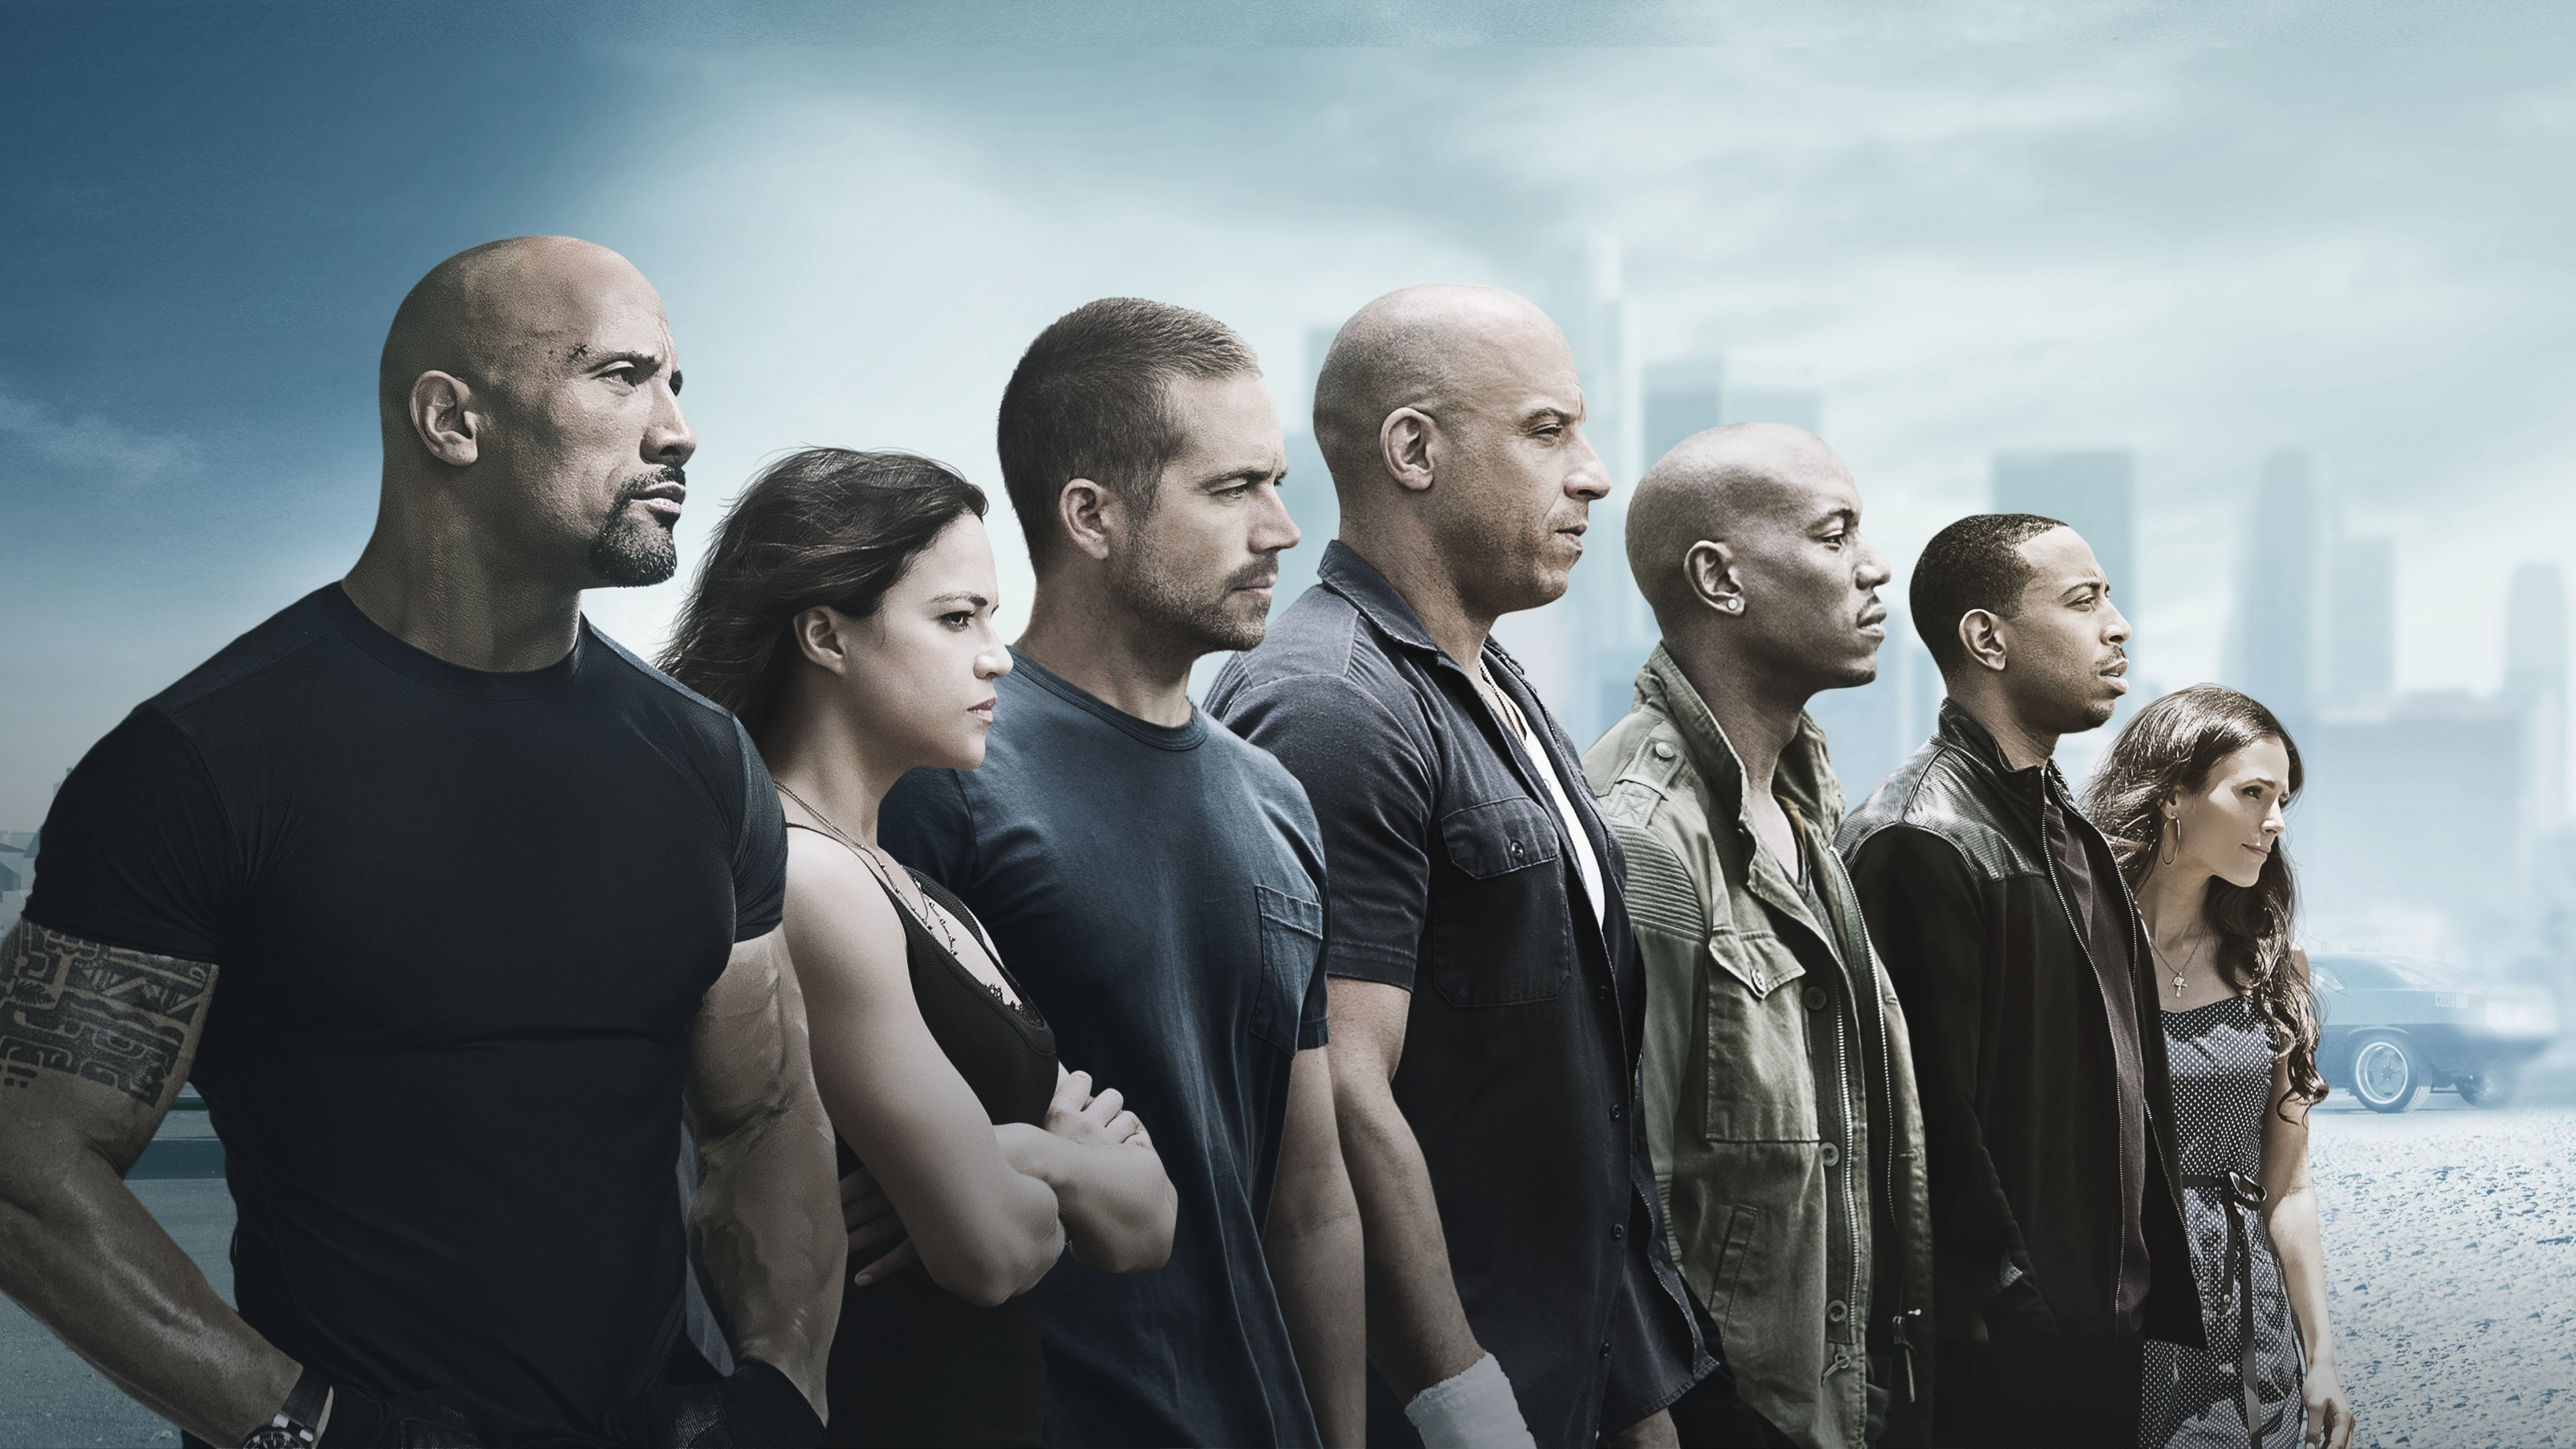 wallpaper furious 7, fast and the furious, hd, 4k, movies, #2157